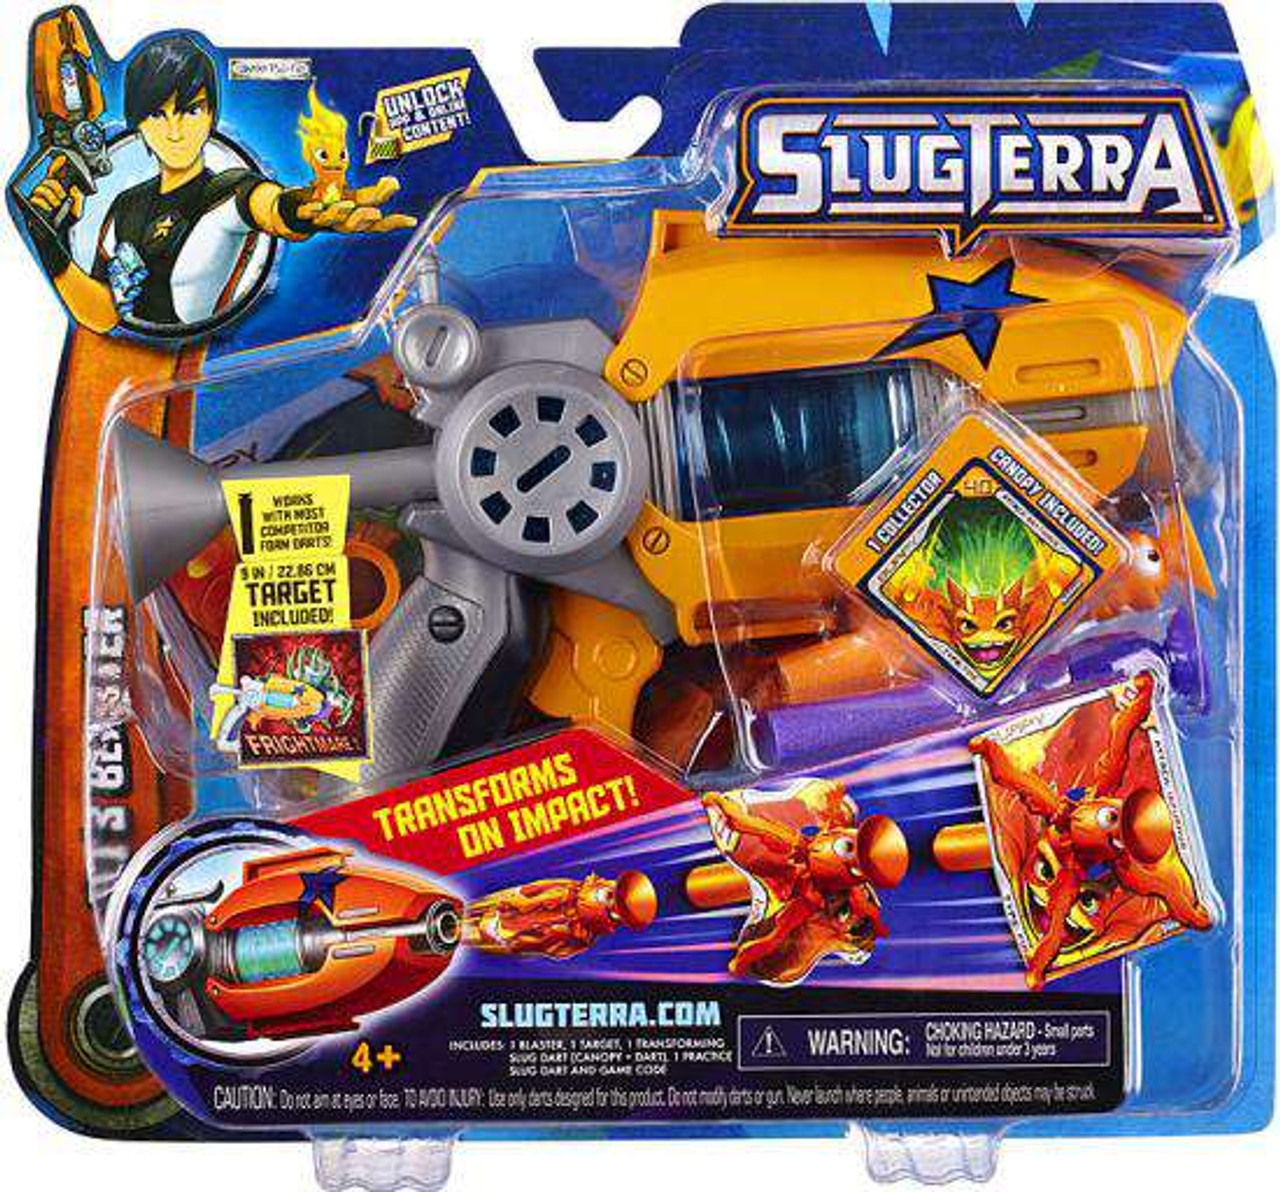 Slugterra Blaster & Evo Dart Eli's Blaster Exclusive Roleplay Toy [Entry]